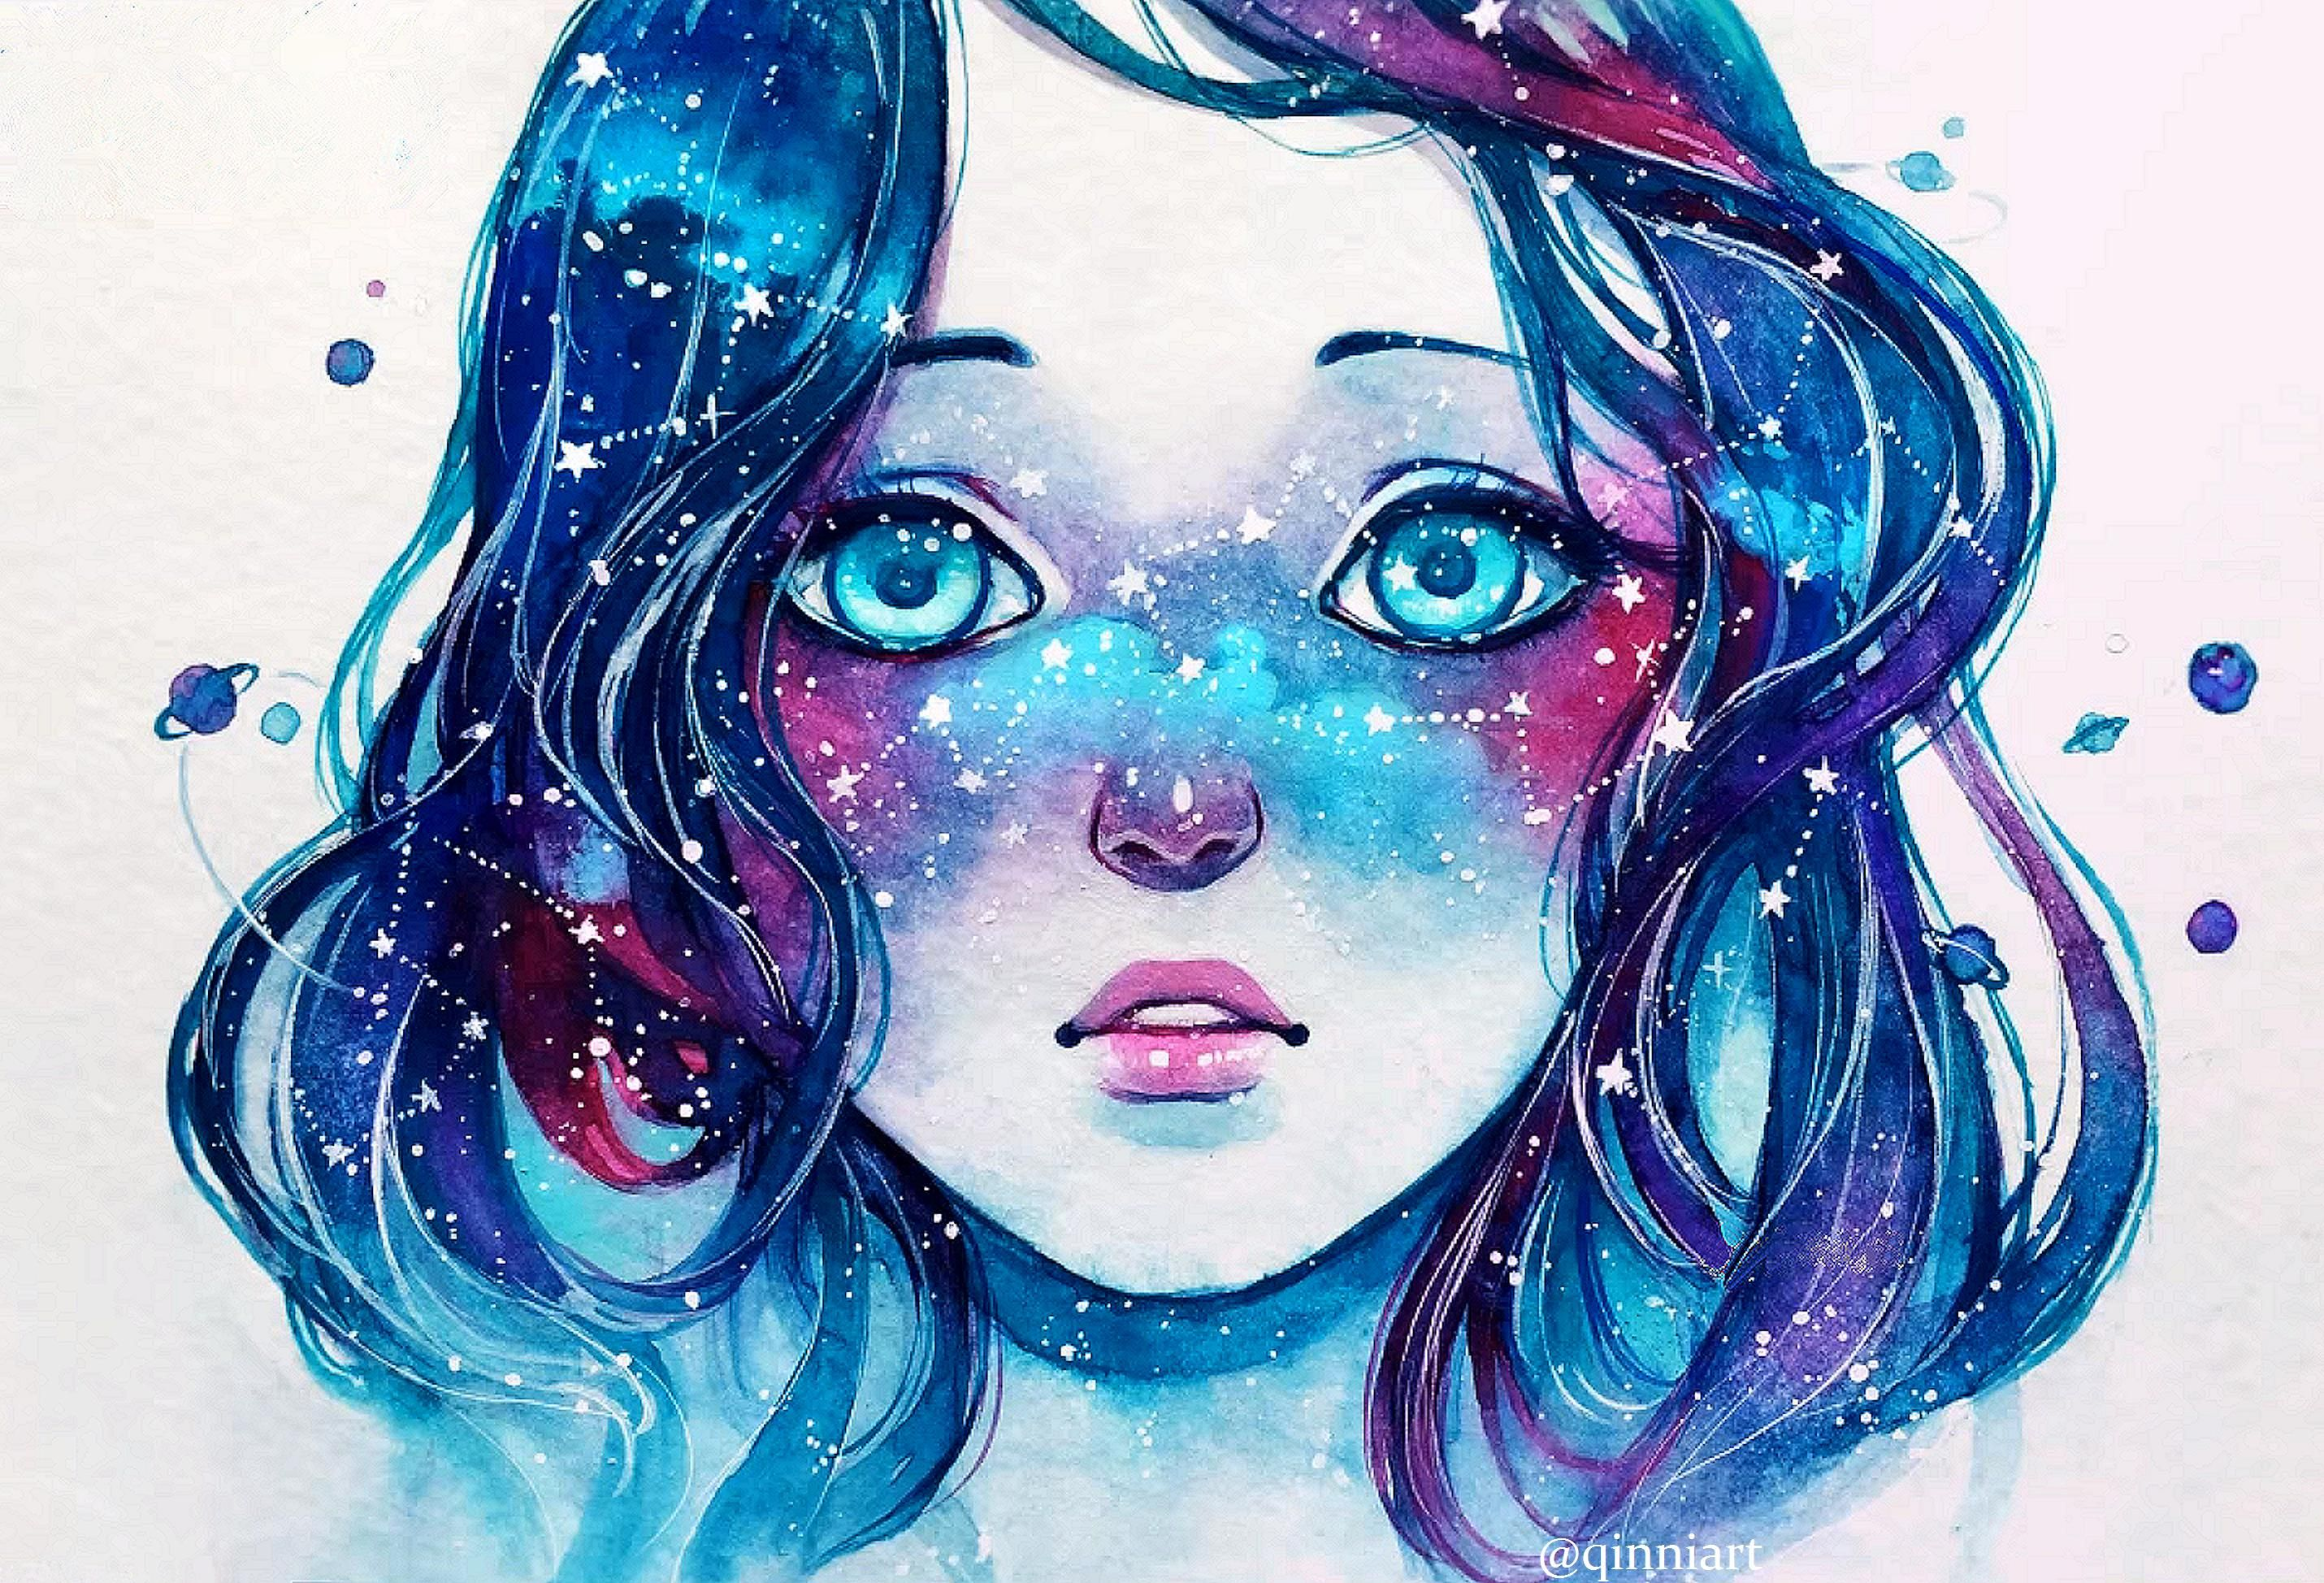 Starred Freckles. By Qinni (Qing Han). | Drawings, Anime art, Galaxy art